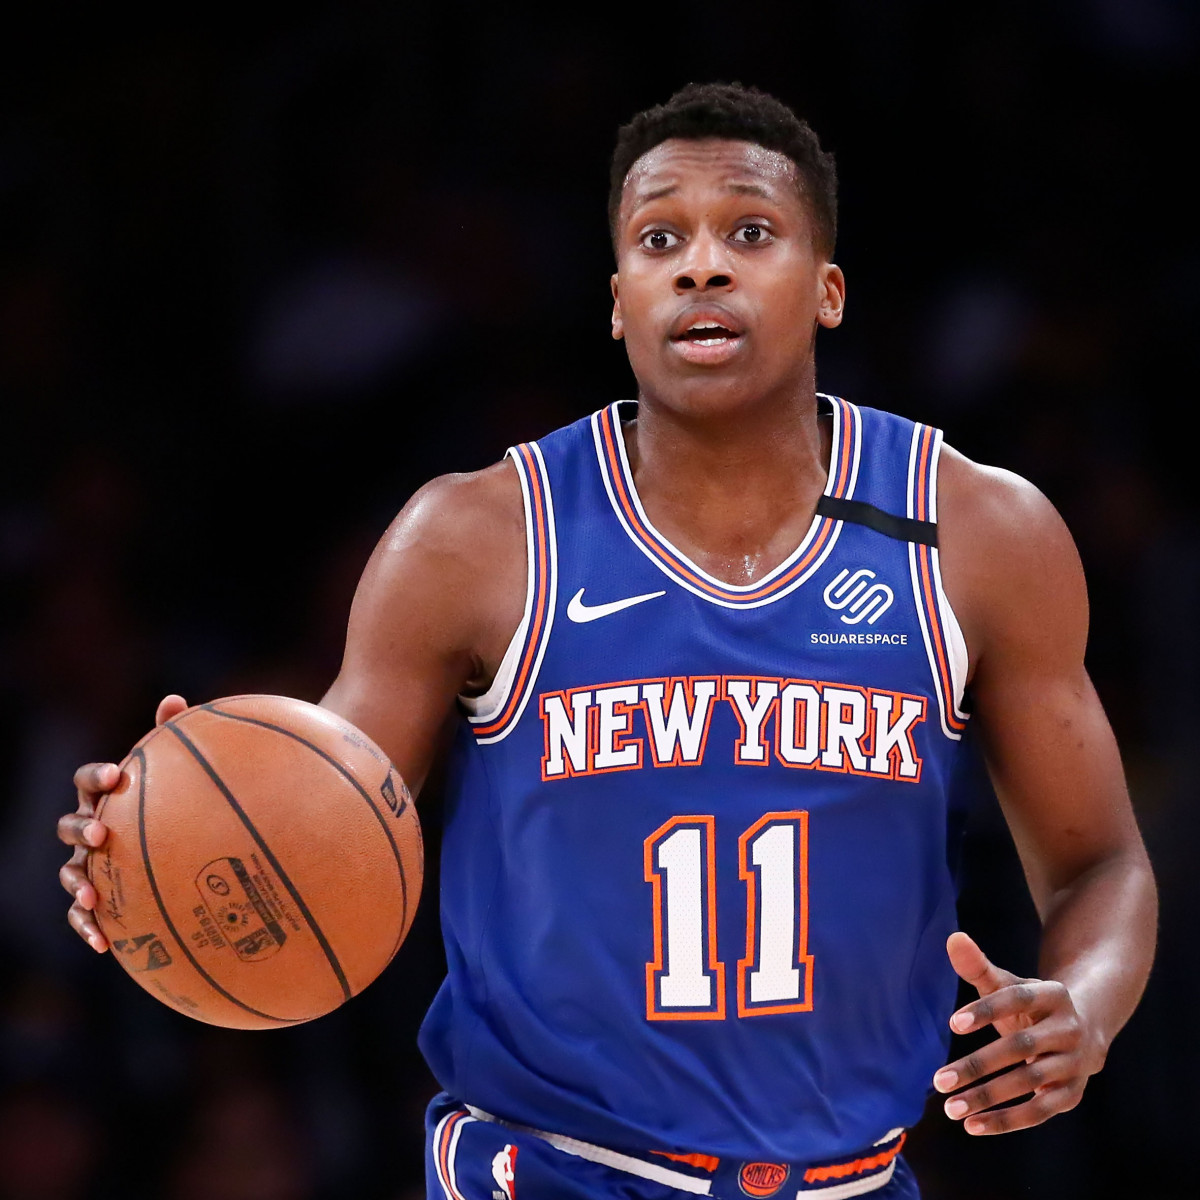 Stats: Frank Ntilikina's Top 10 Scoring Games